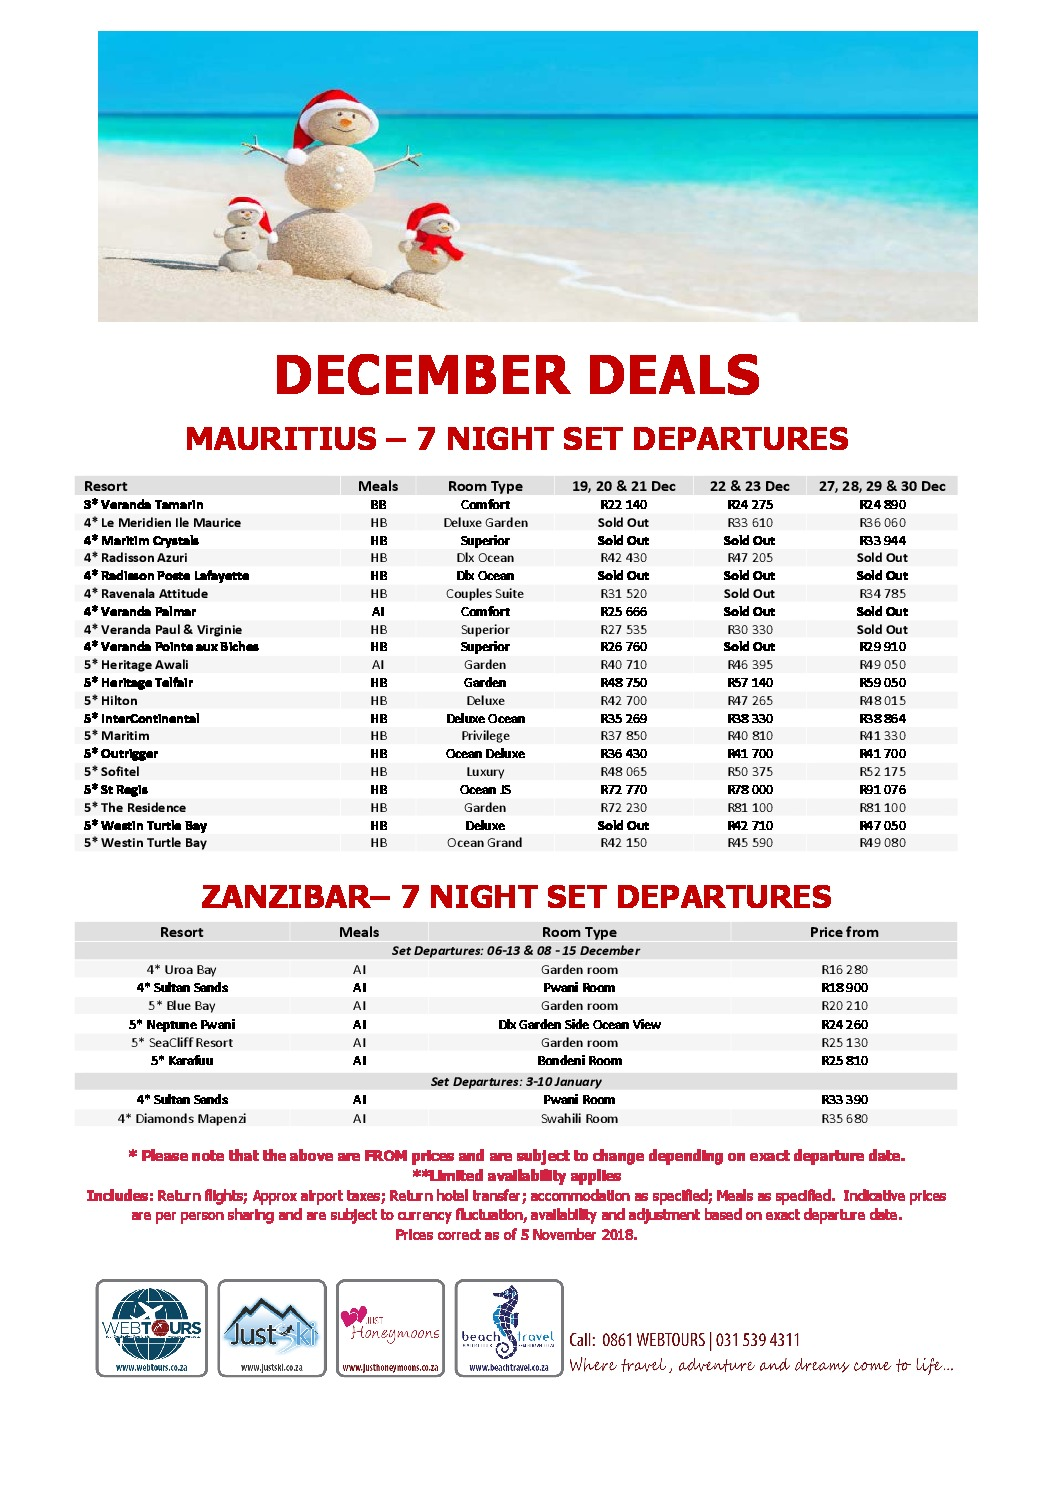 December Deals – Mauritius & Zanzibar – Set Departures